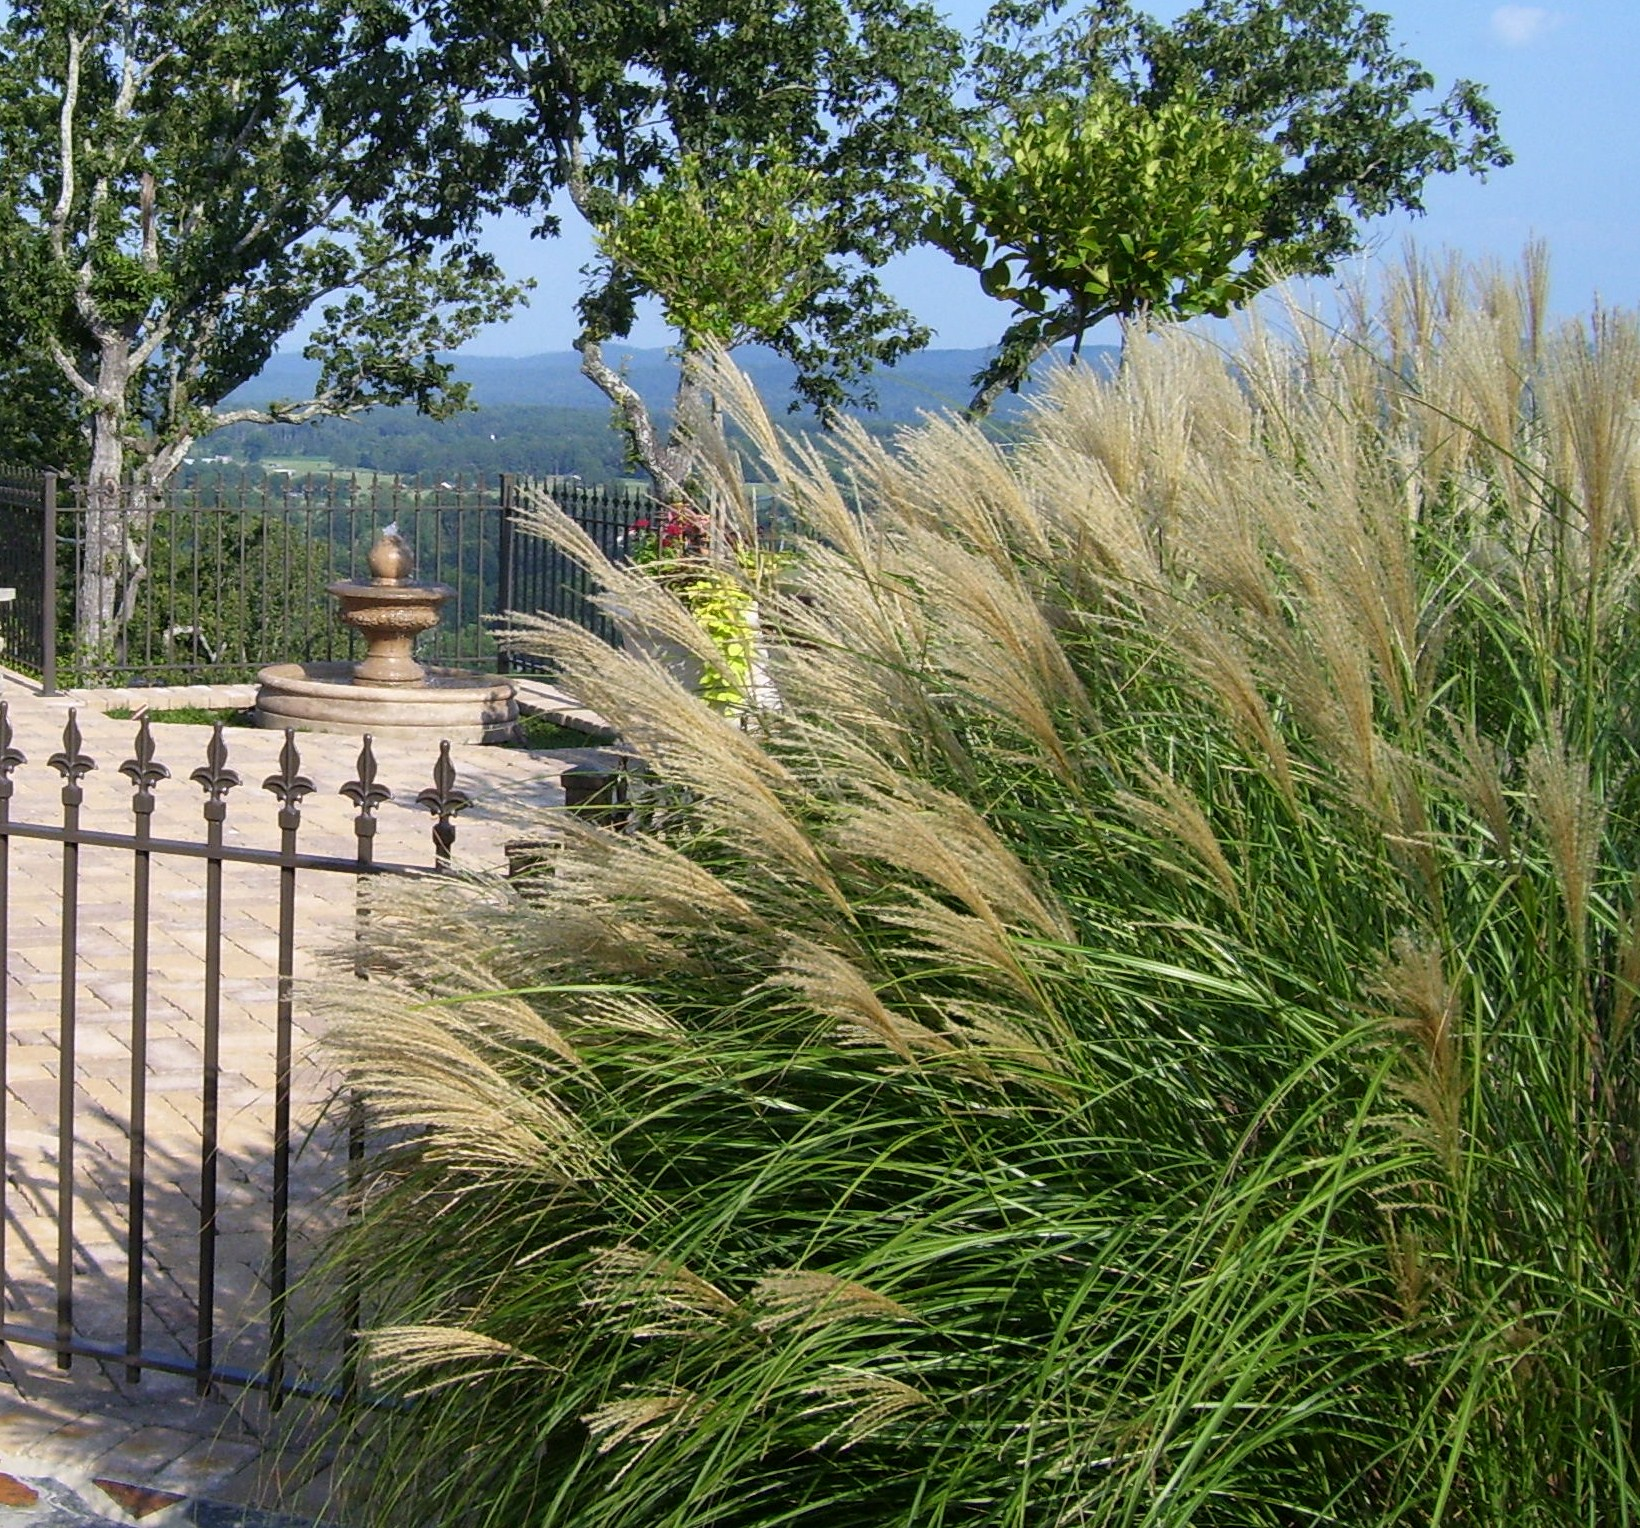 Ornamental grasses archives landscaping tipslandscaping tips for Ornamental grasses in the landscape